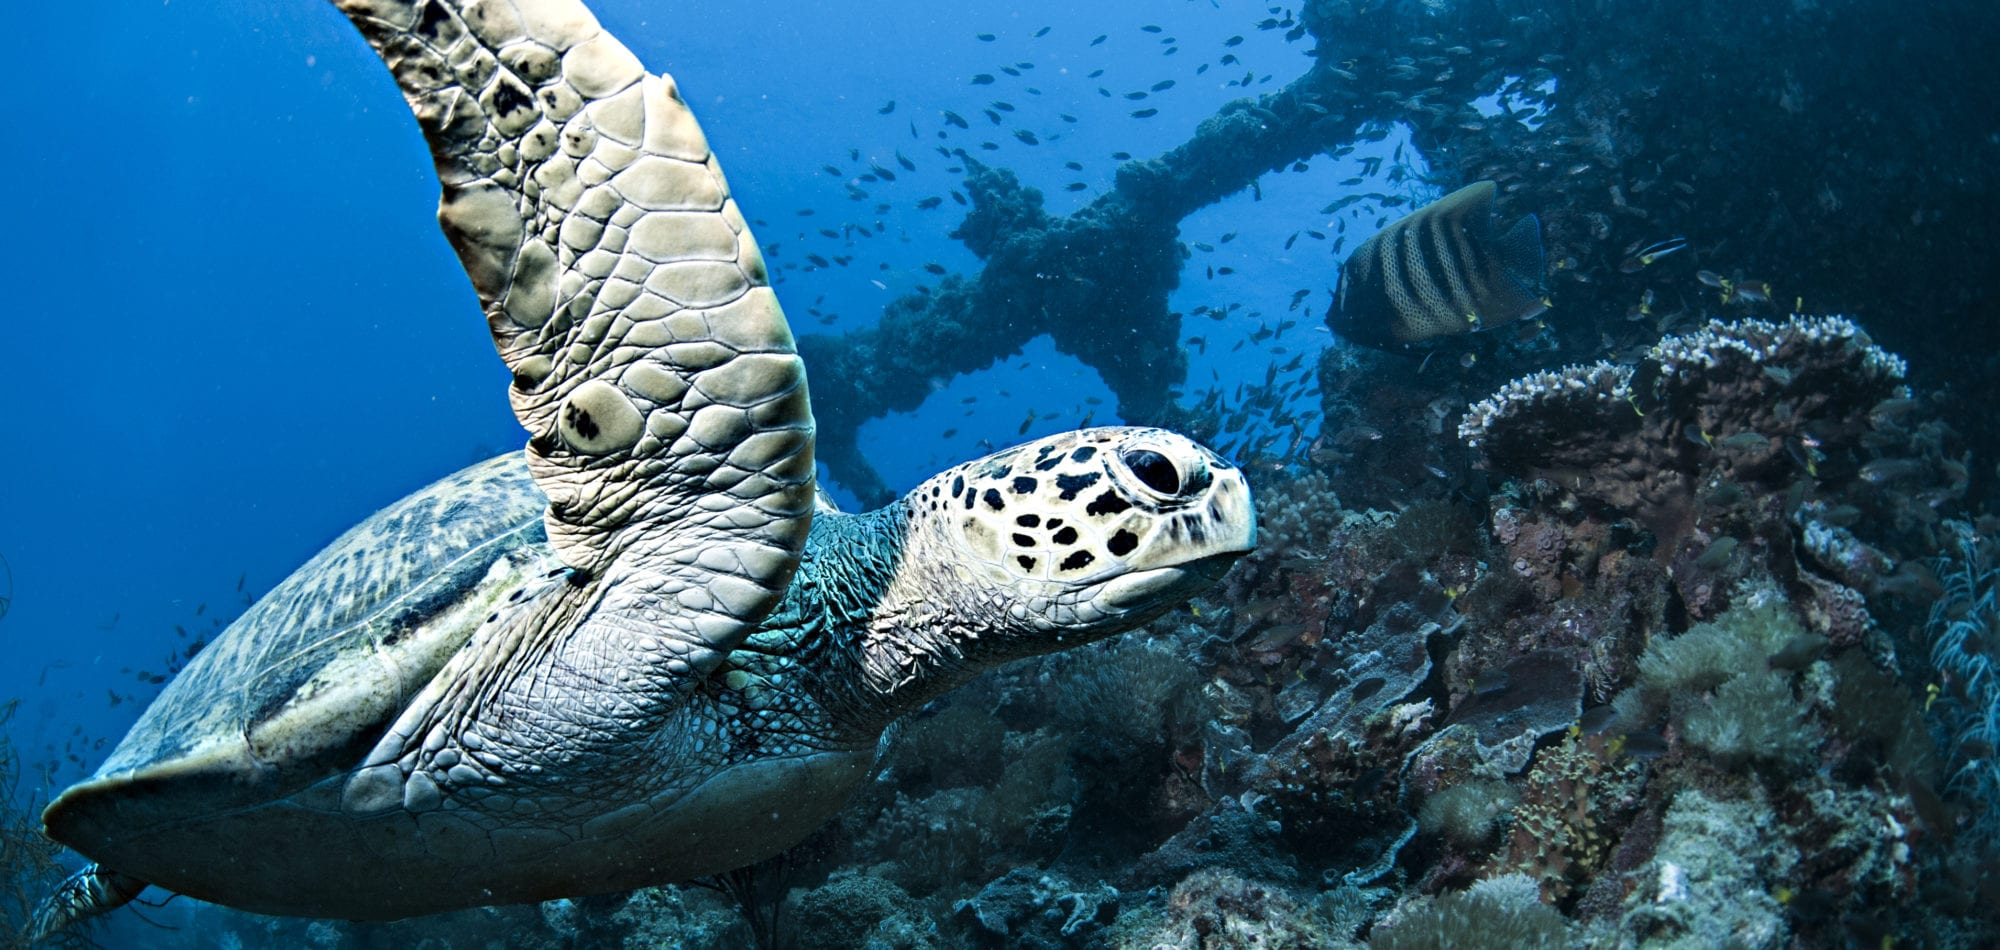 Scuba dive Australia - Hawksbill Turtle on the Yongala Shipwreck